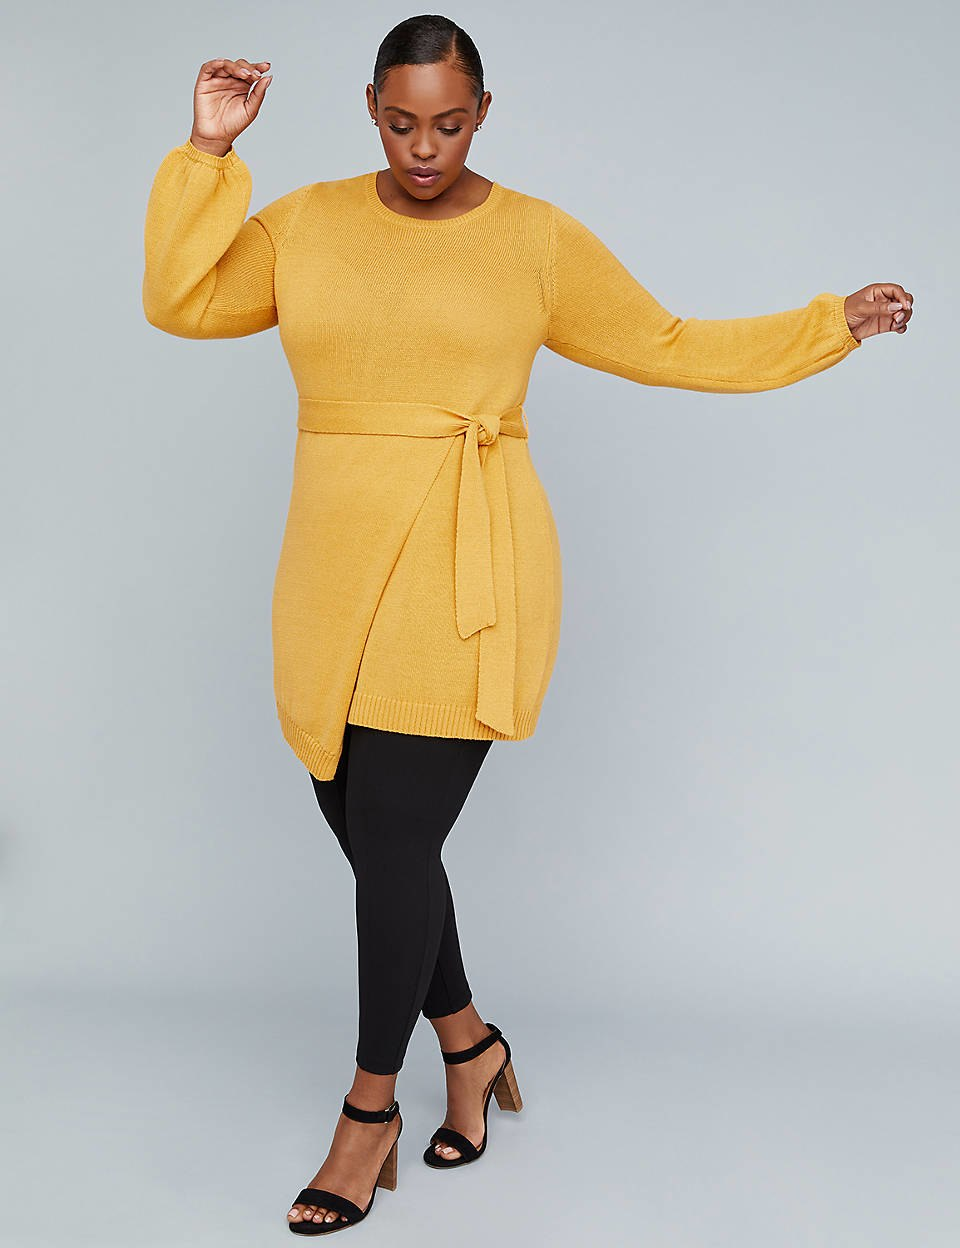 lane bryant girl with curves sweater